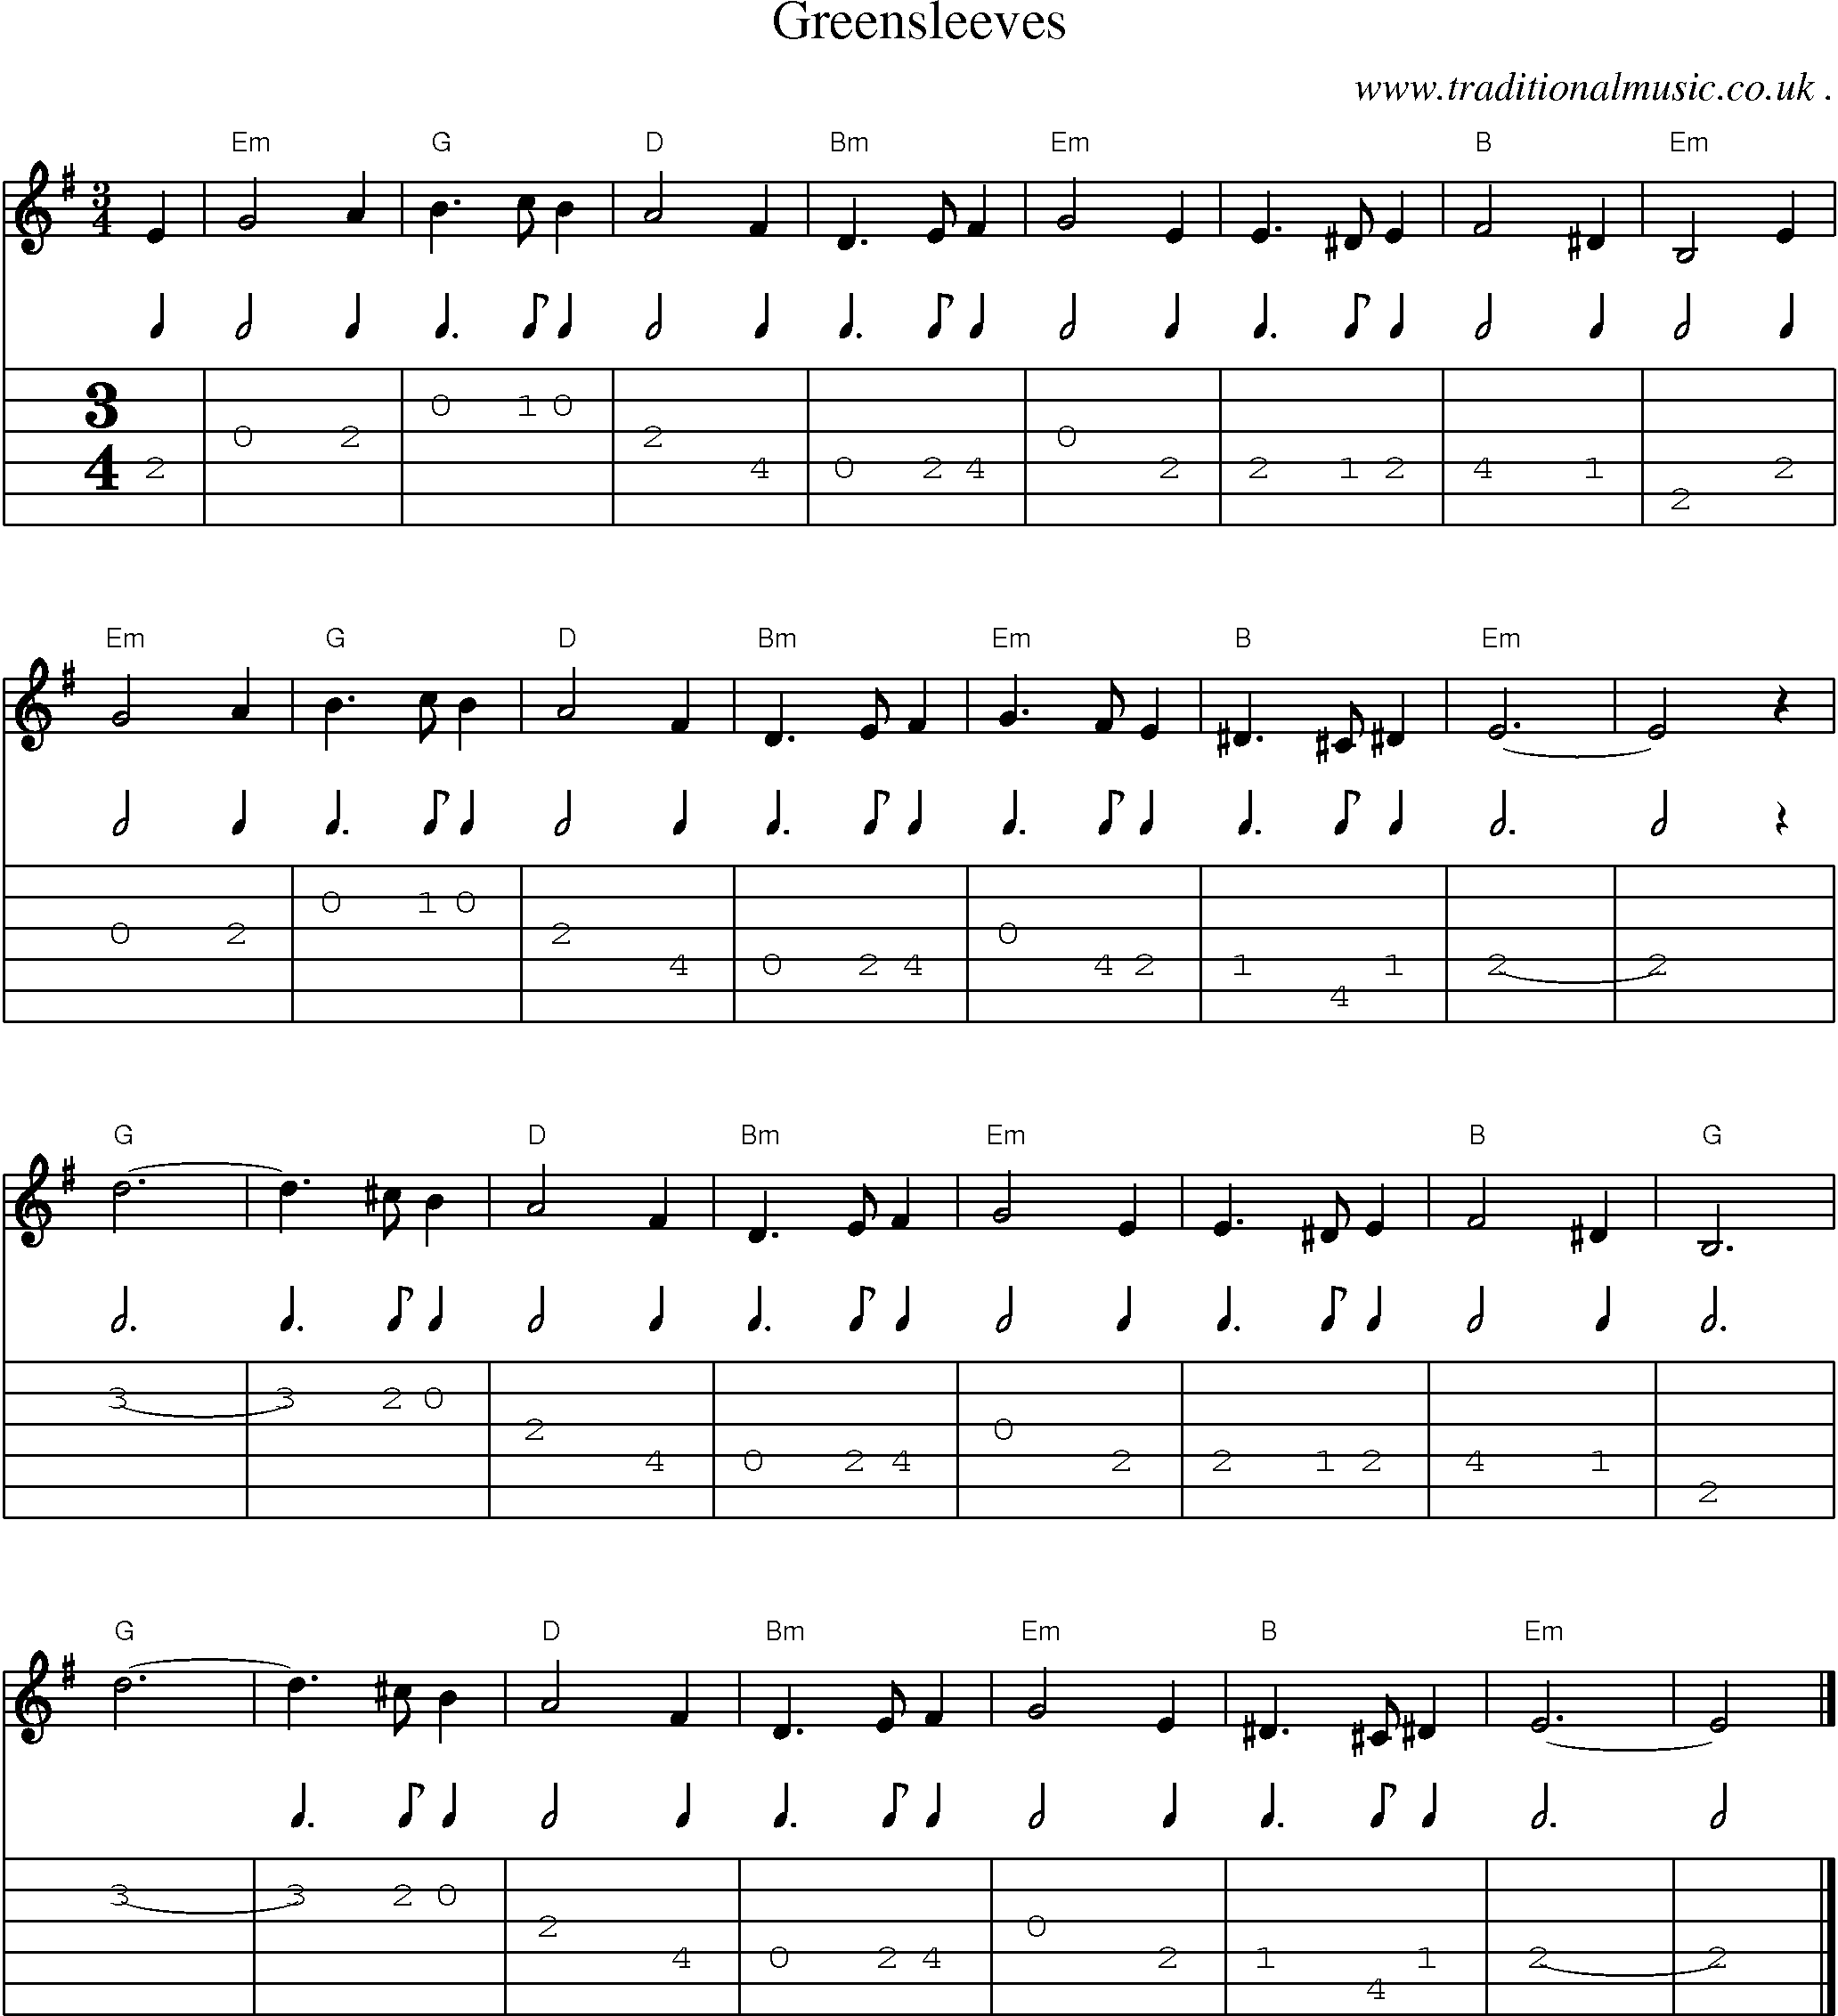 Music Score And Guitar Tabs For Greensleeves